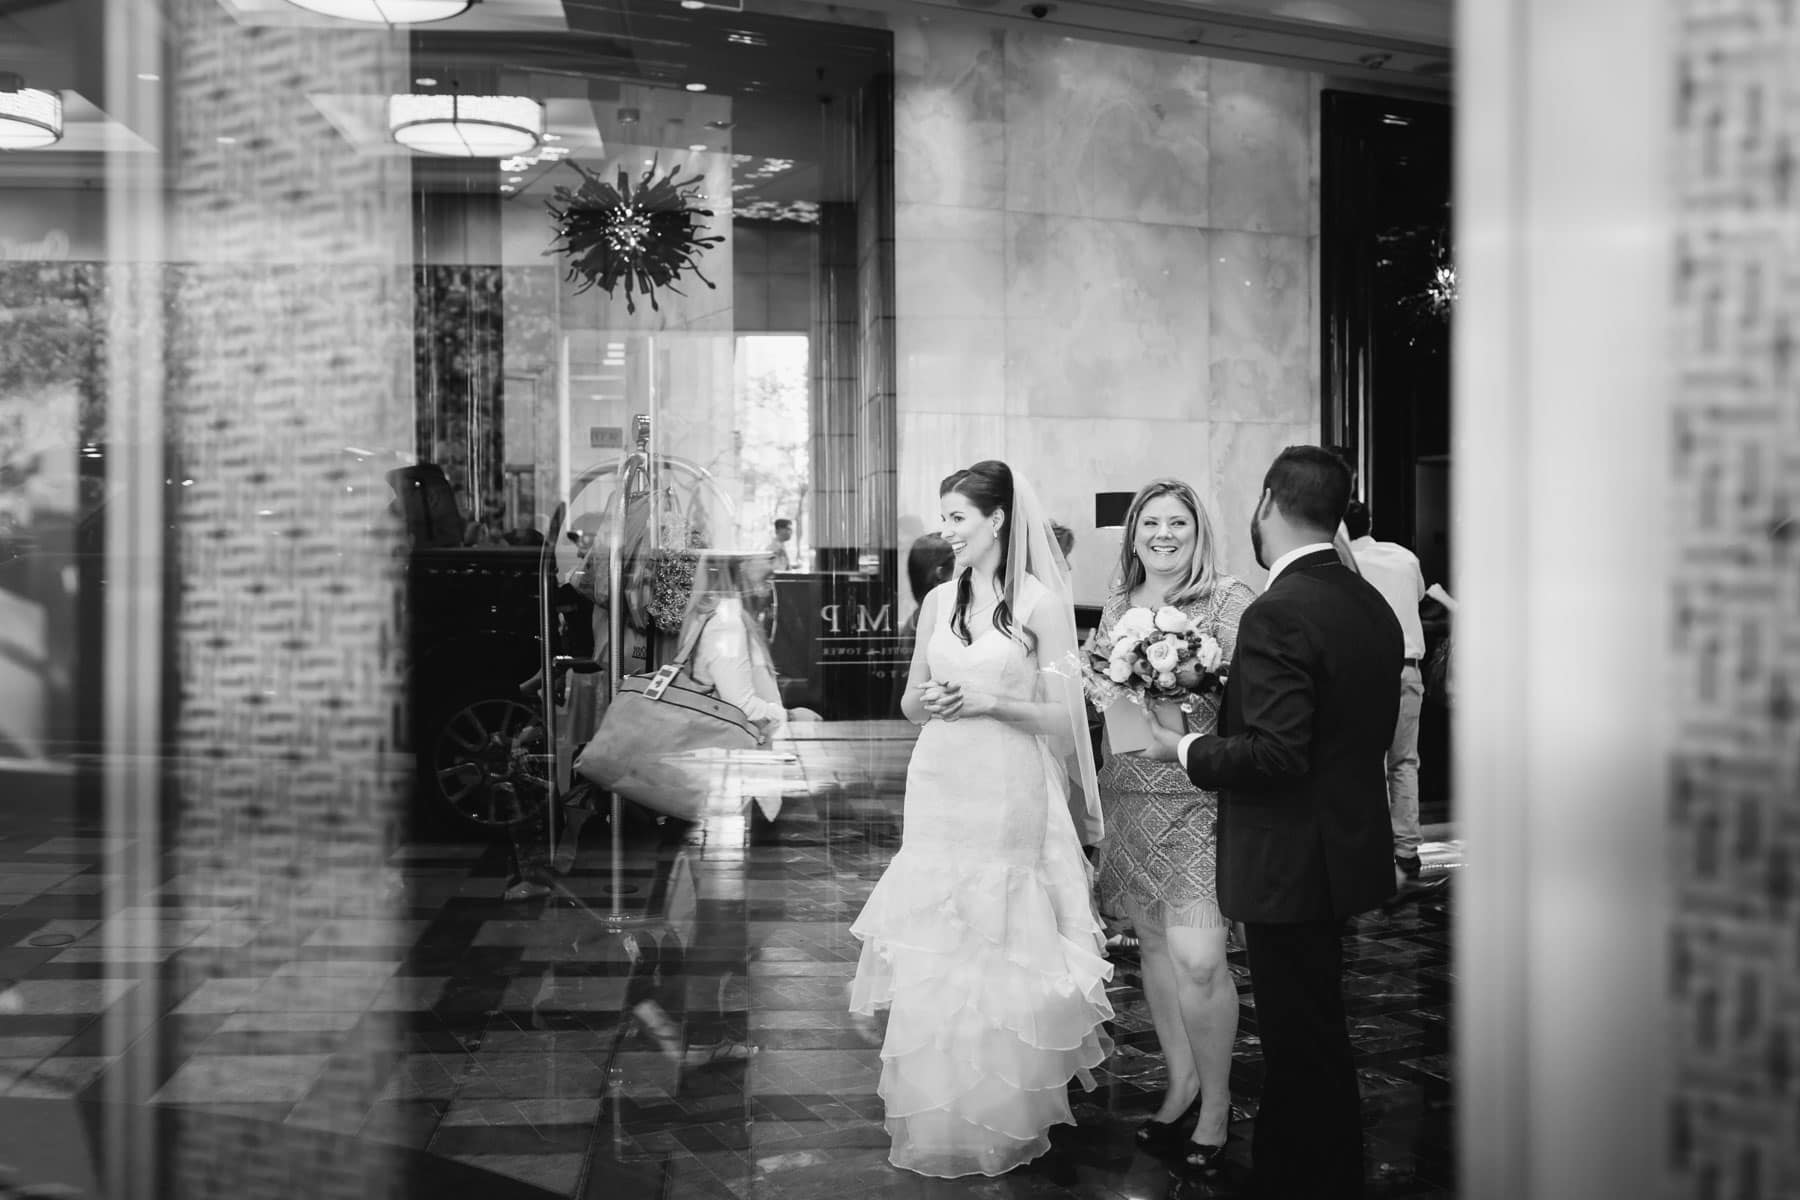 The bride, a man, and the maid of honour stand in the lobby of the Trump Hotel.